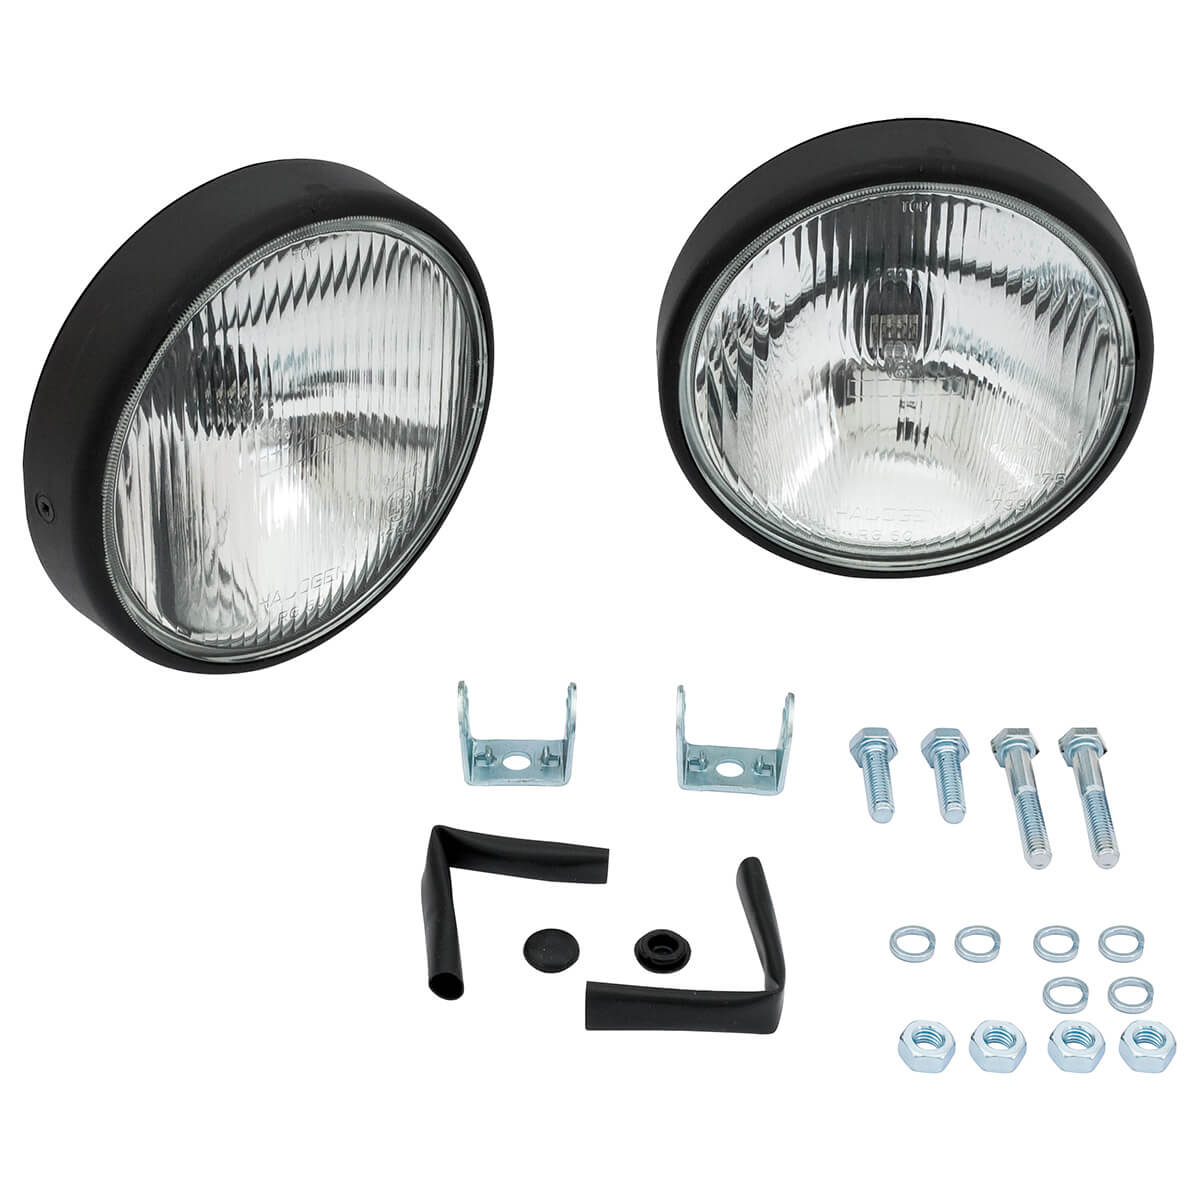 Lucas Driving and Fog Lamp Covers - Lamps & Lighting - Electrical